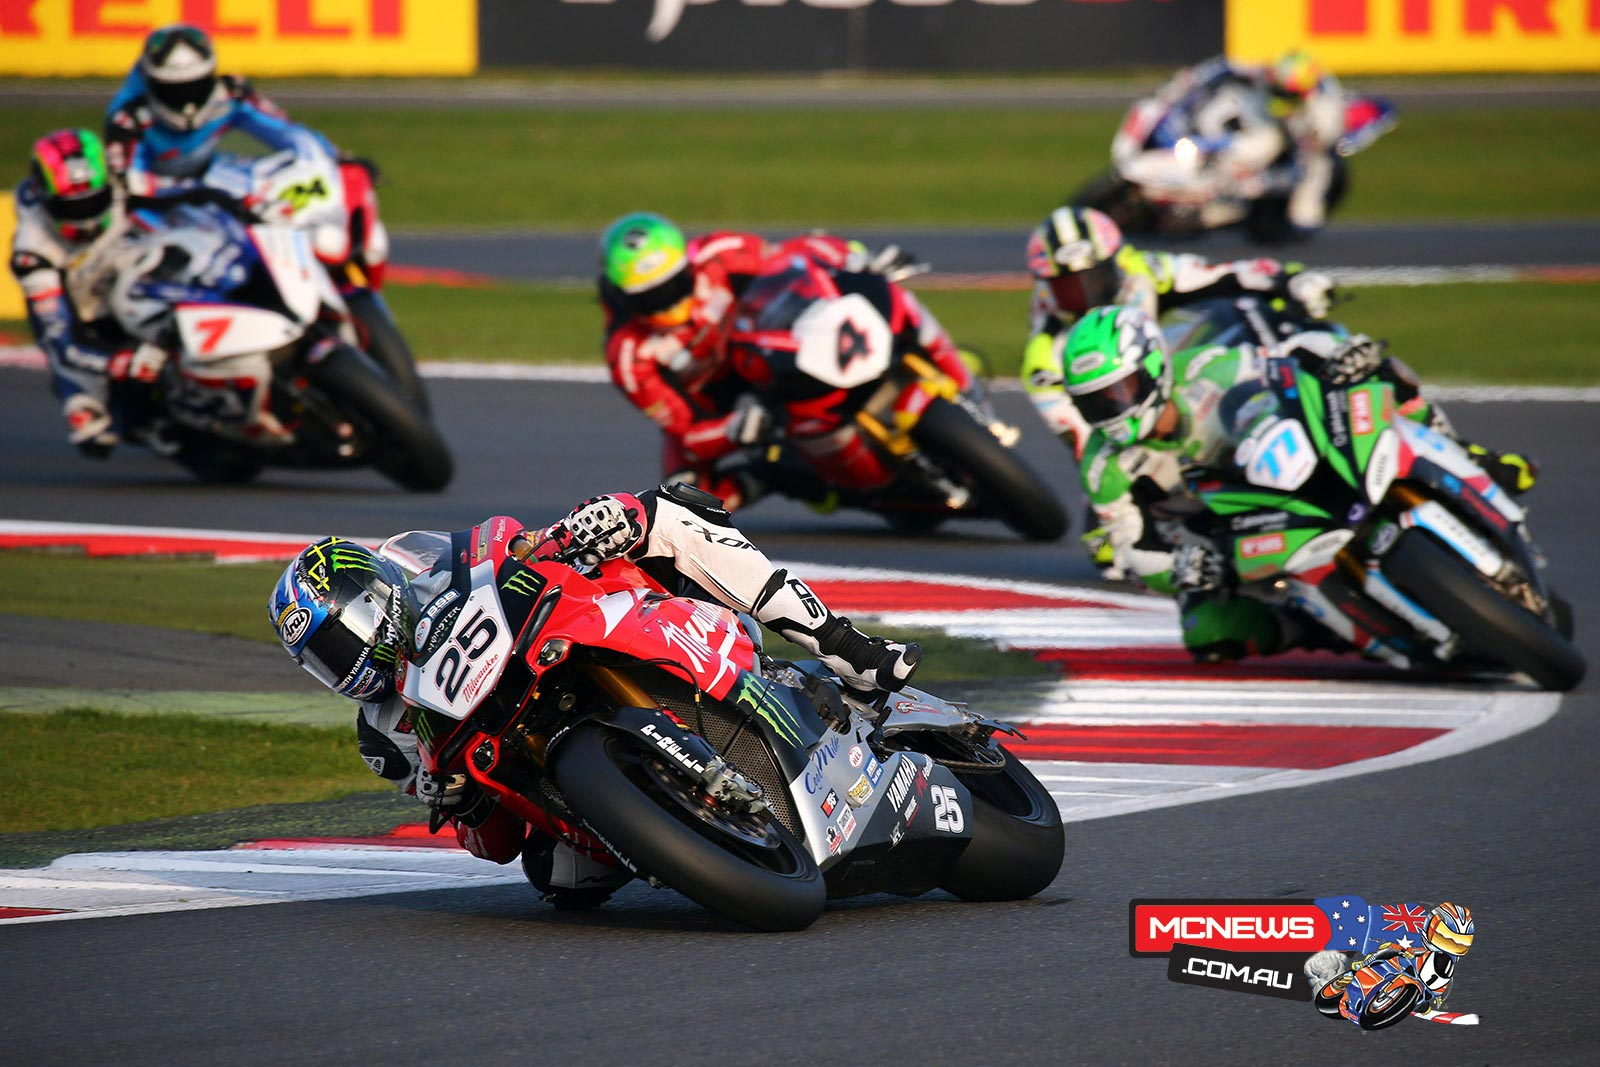 Joshua Brookes leading at Silverstone